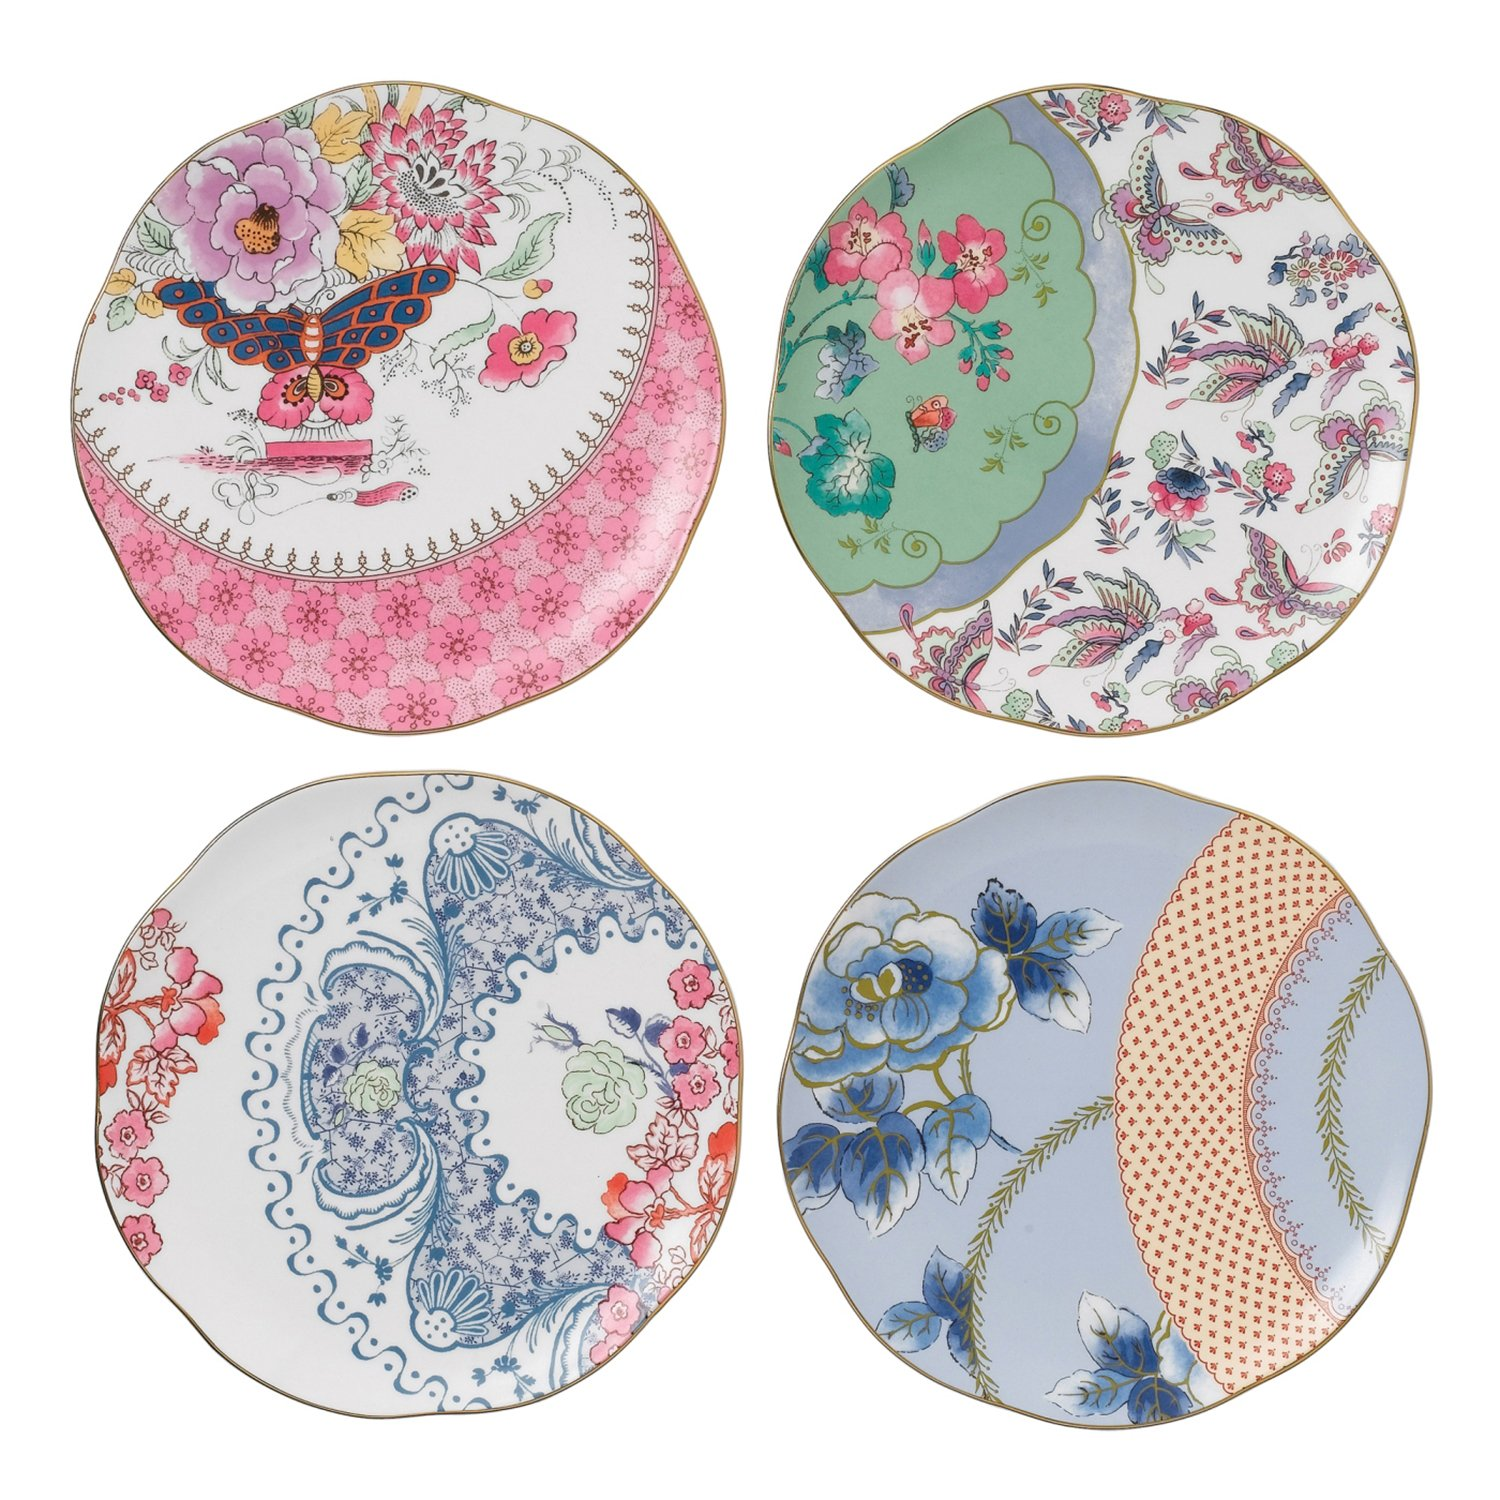 Wedgwood Harlequin Butterfly Bloom Plates, 8.25-Inch, Set of 4